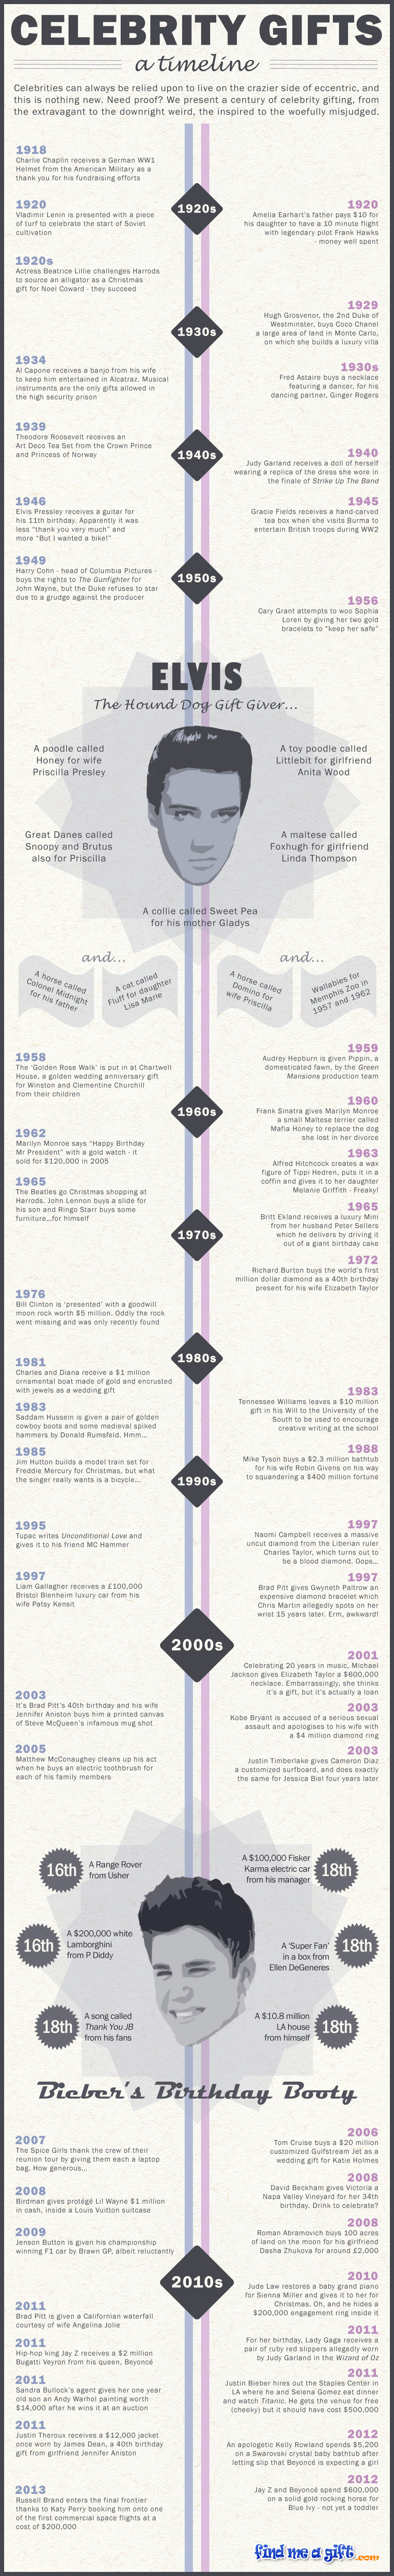 Infographic showing a timeline of celebrity gifts